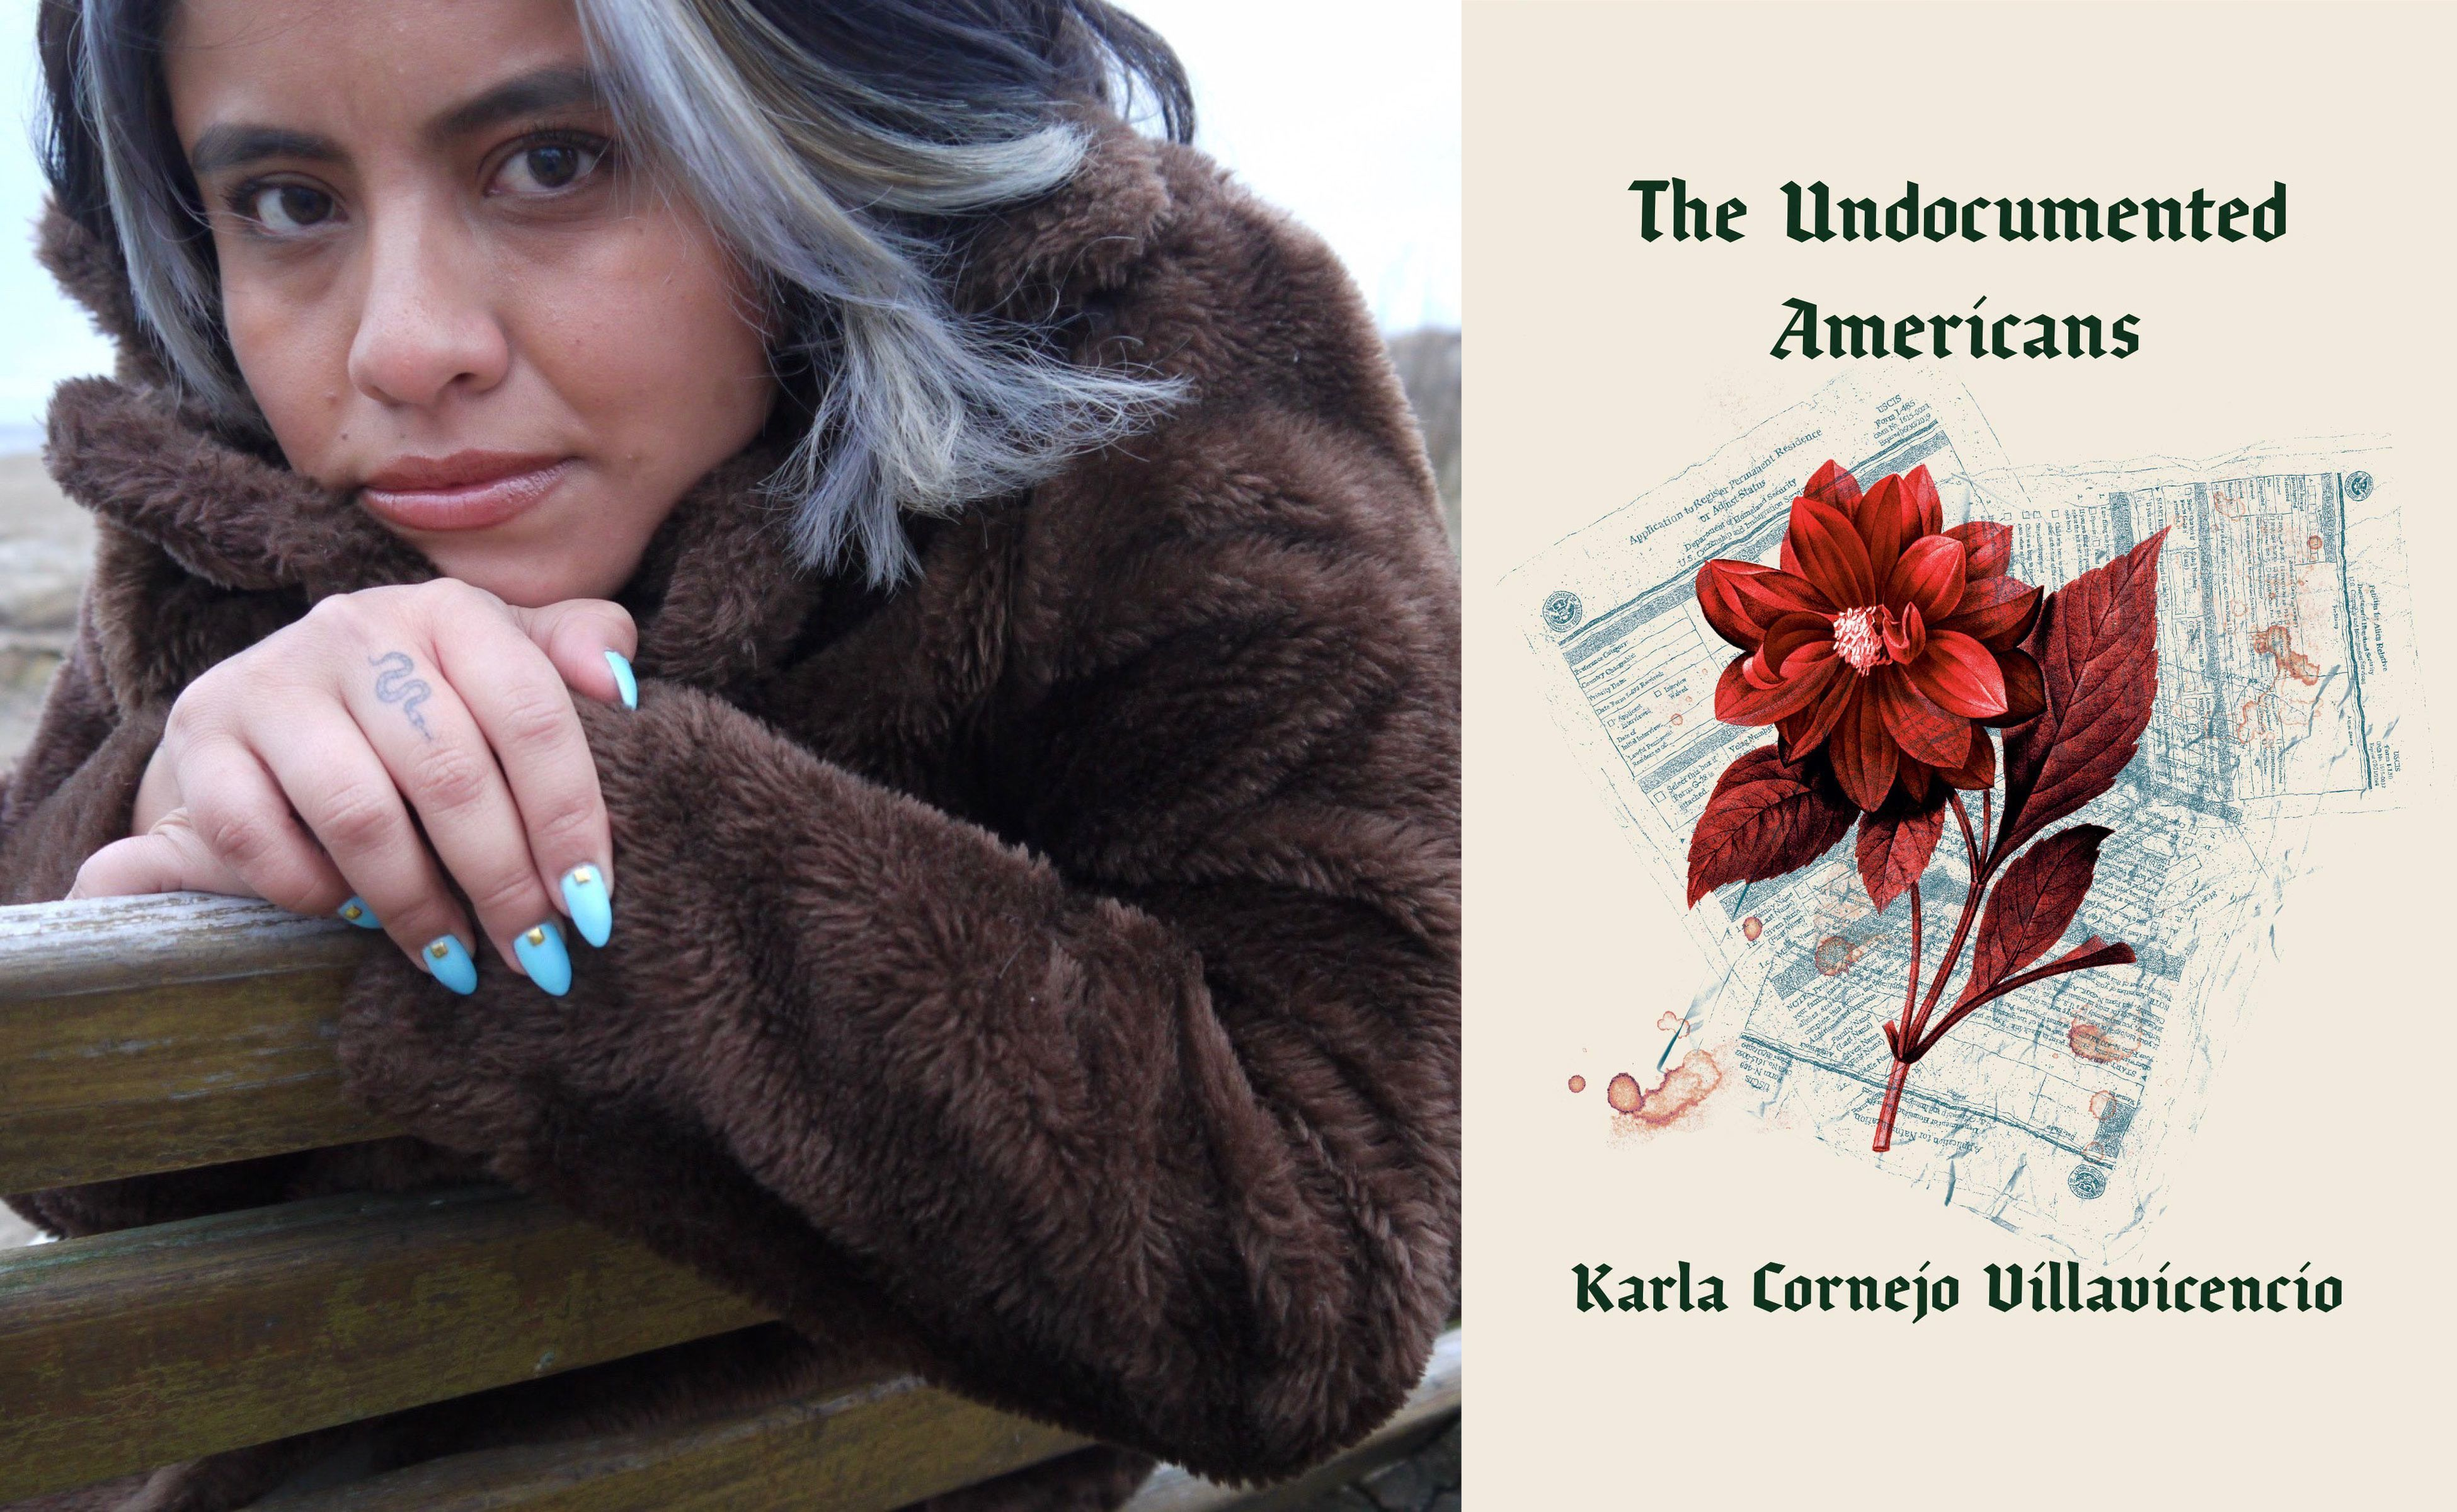 MTREP Book Club - The Undocumented Americans